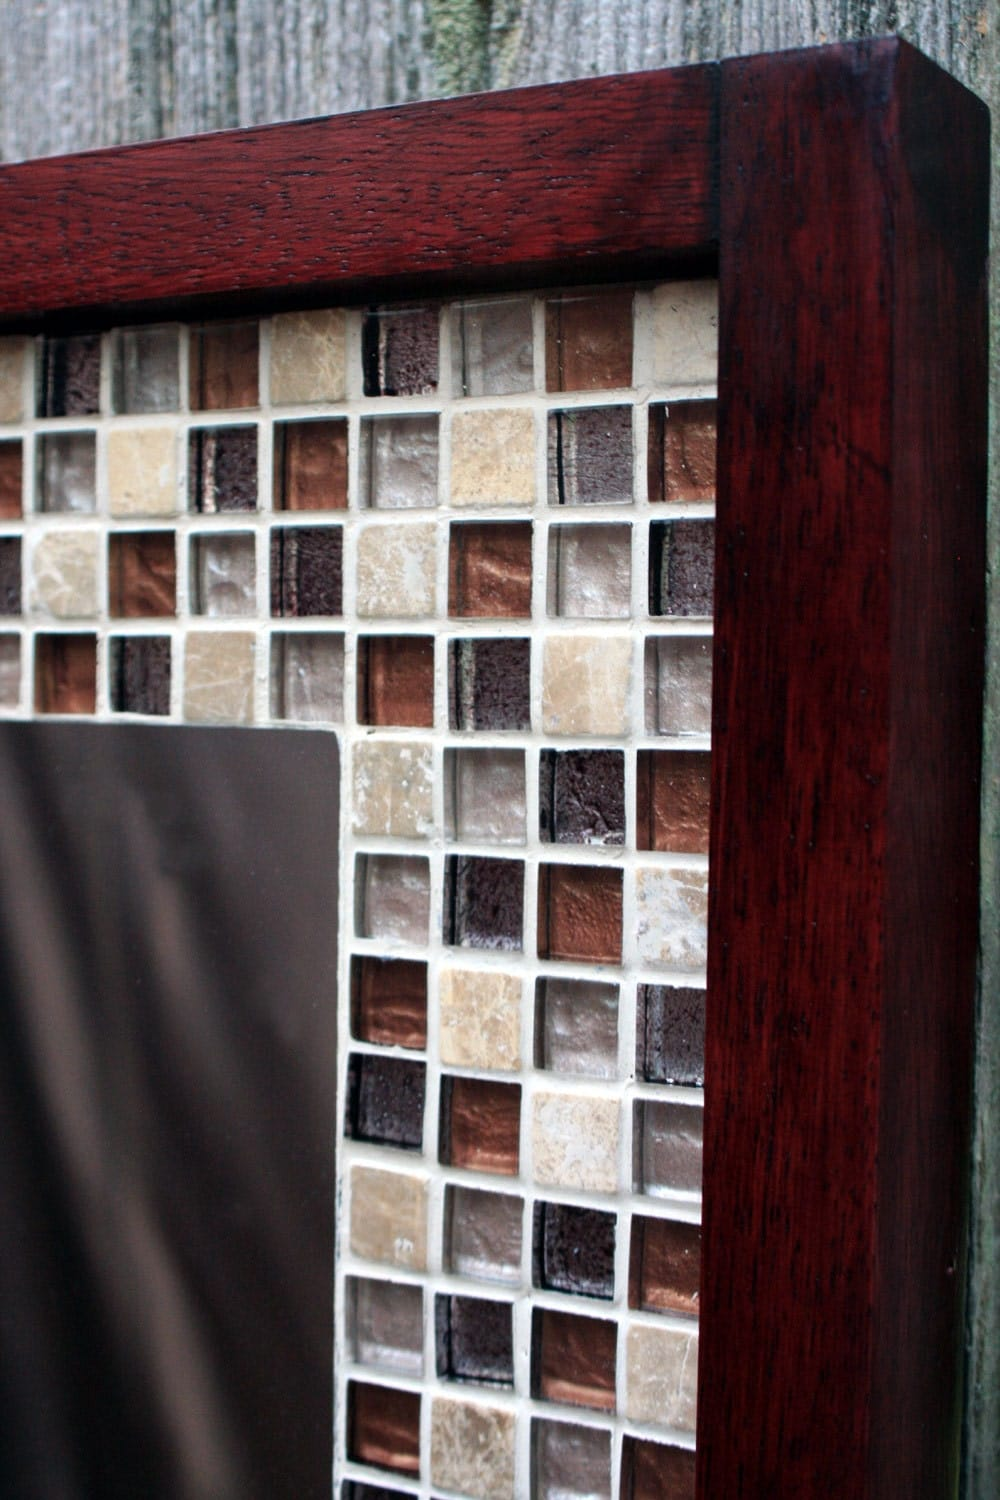 glass mosaic tile framed mirror tile framed mirror brown. Black Bedroom Furniture Sets. Home Design Ideas